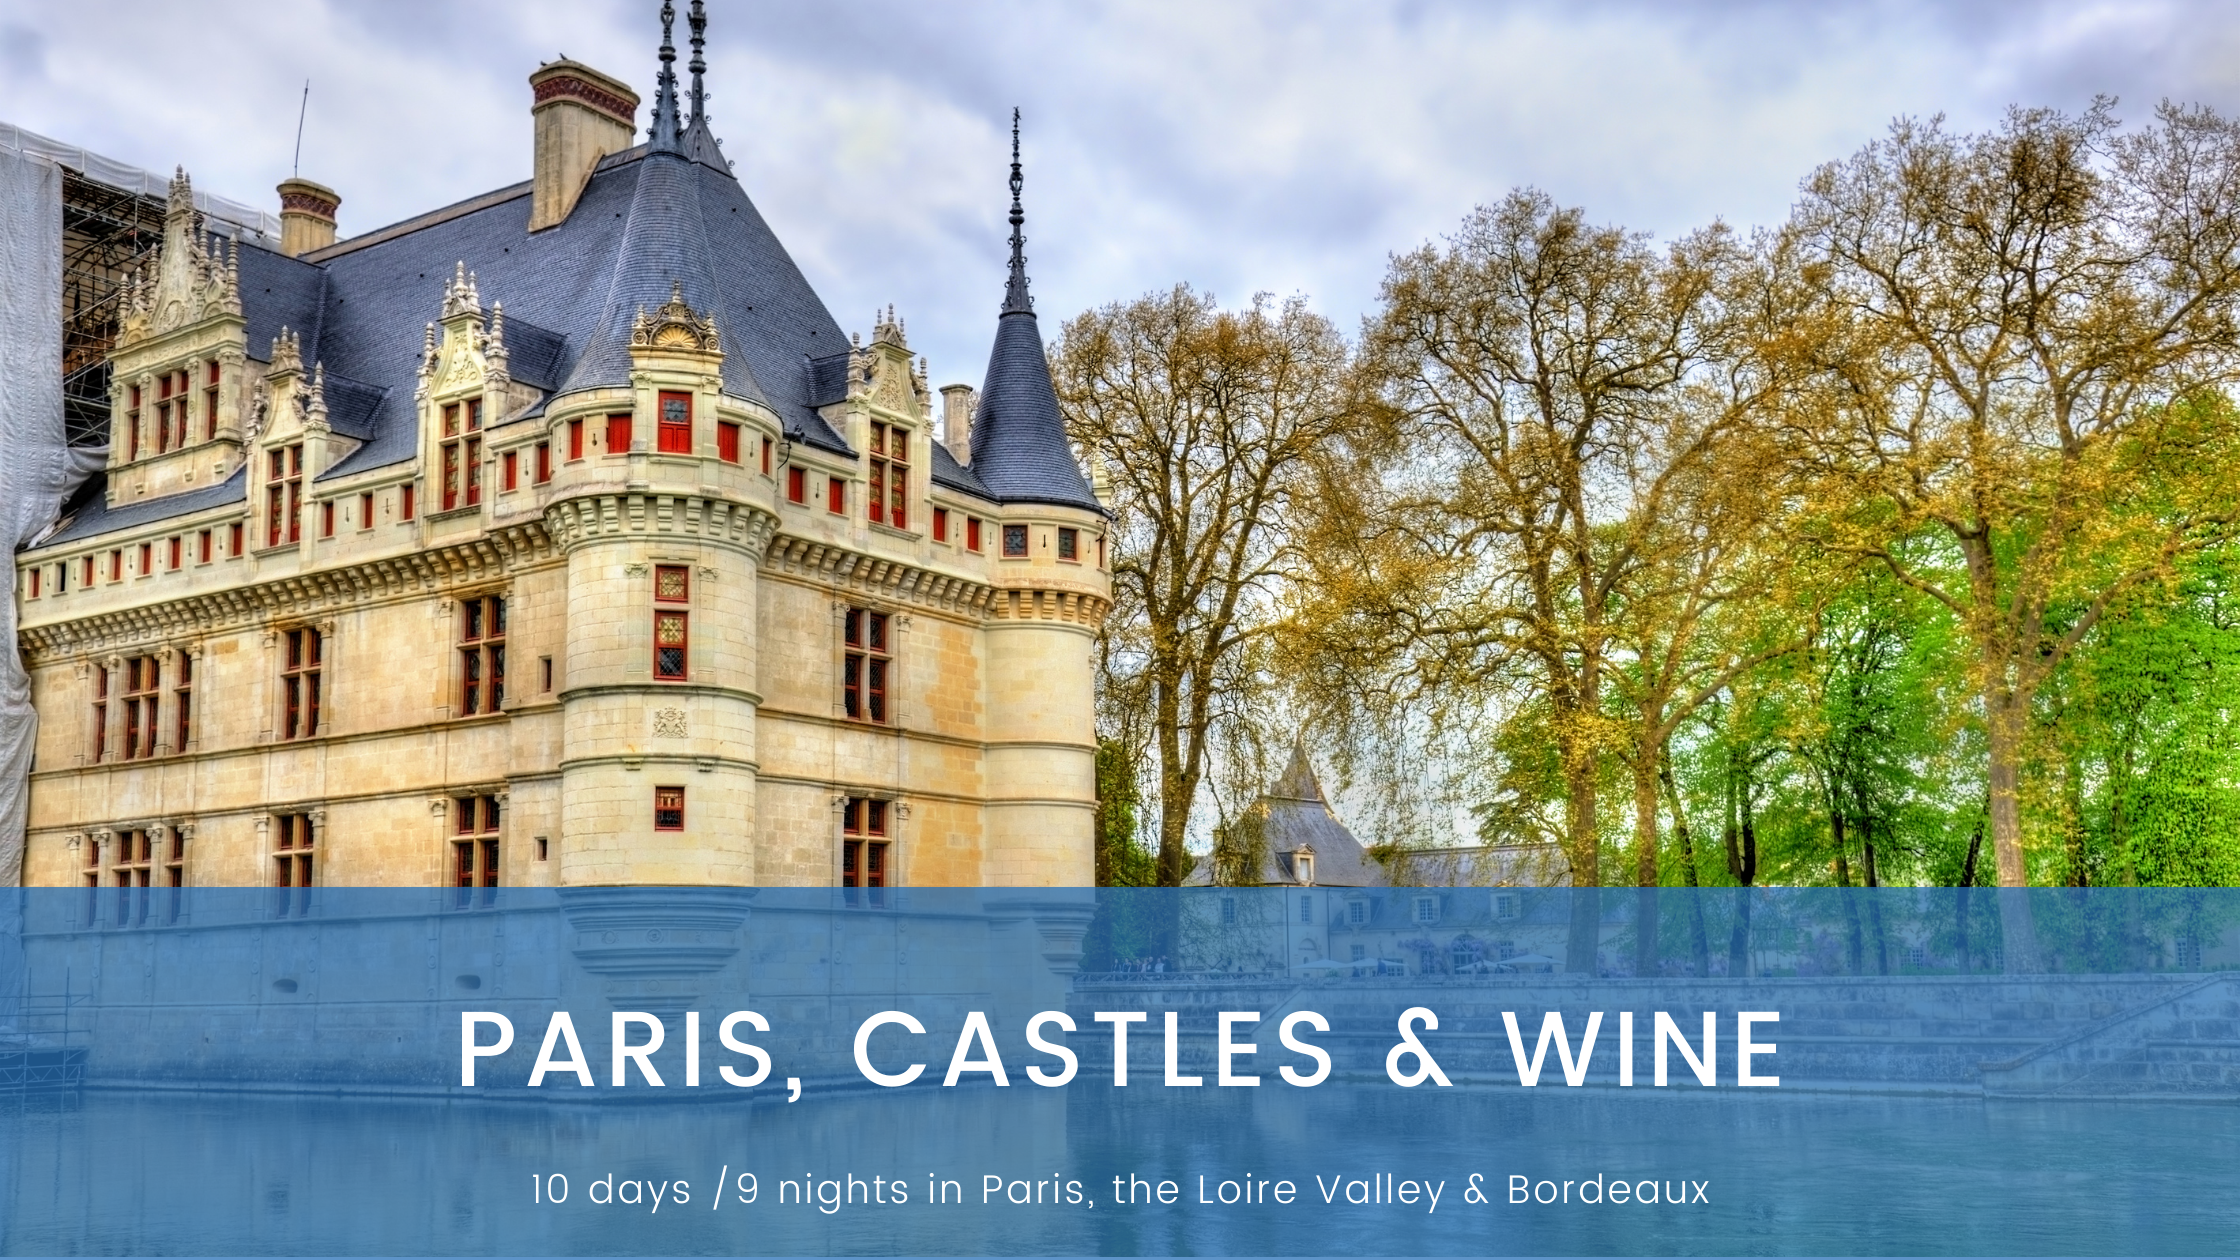 Paris Castles & Wine